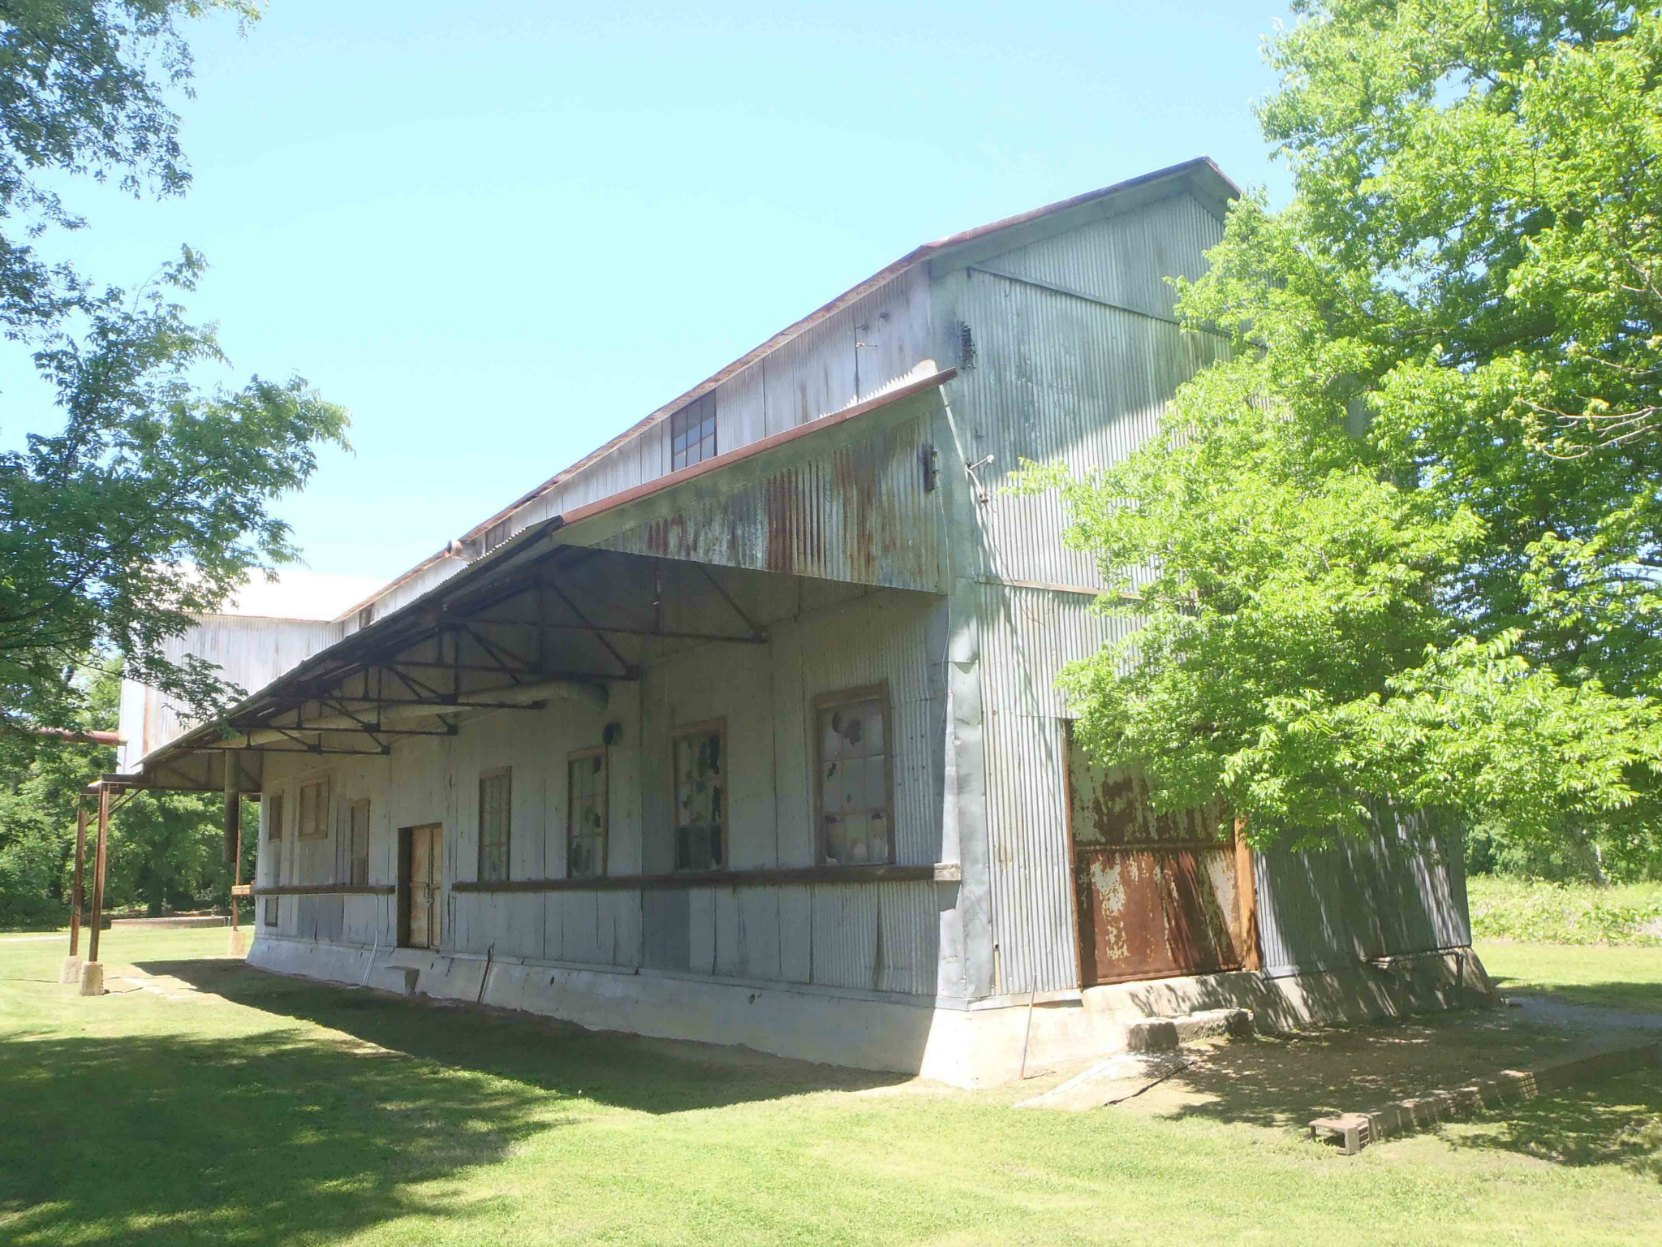 The former cotton gin building, rear view, Dockery Farms, Highway 8, Sunflower County, Mississippi